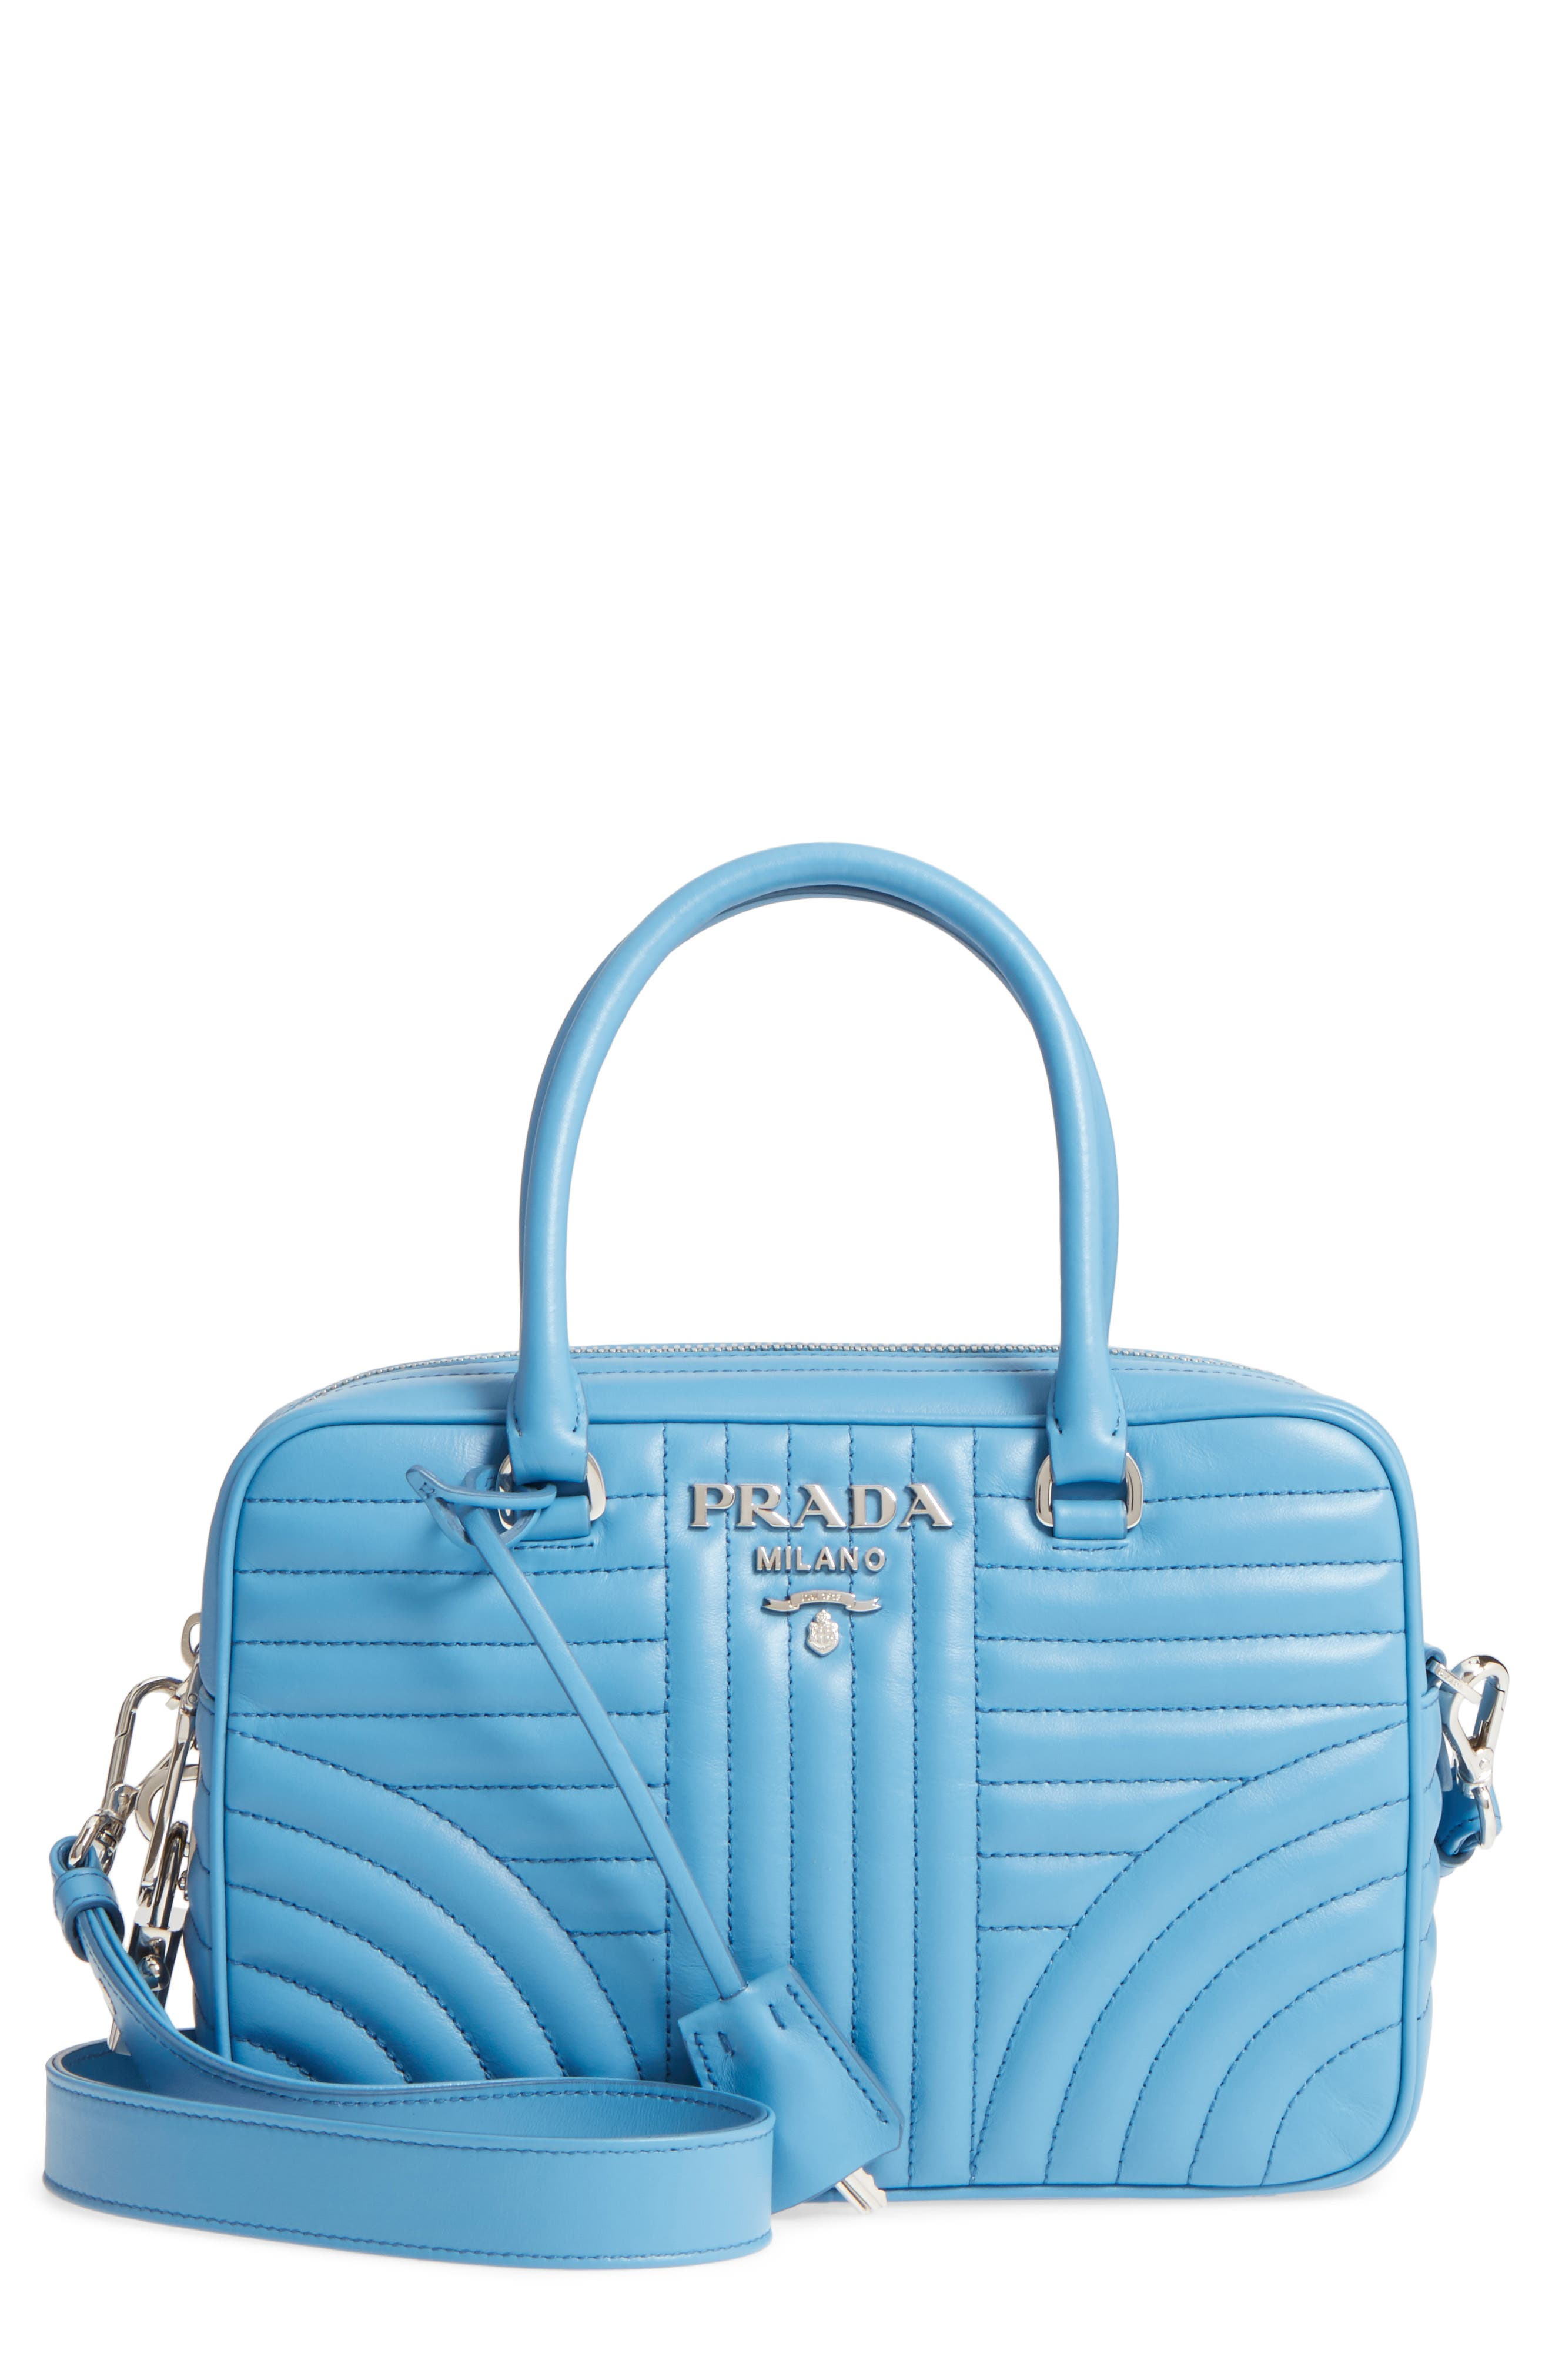 Prada Quilted Leather Bowler Bag